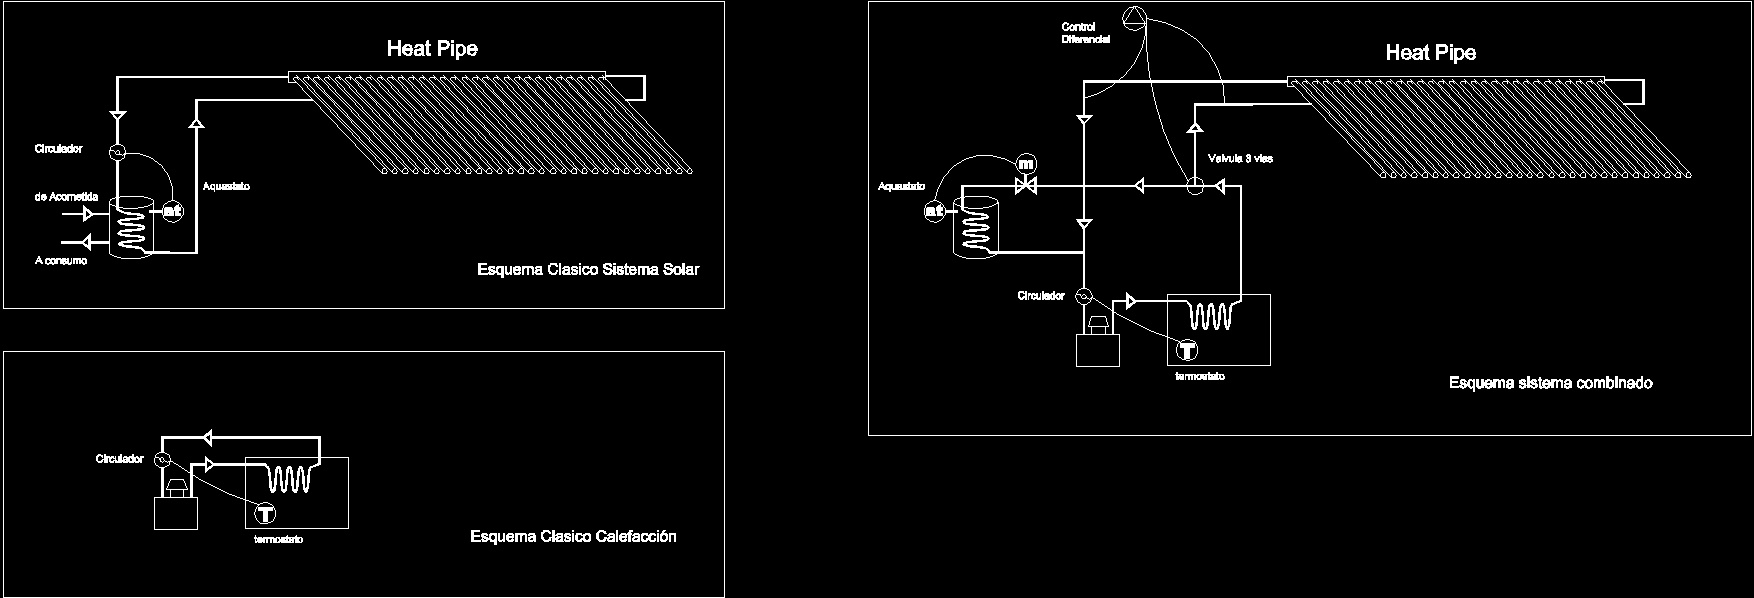 Solar Heating Diagram Dwg Block For Autocad Designs Cad